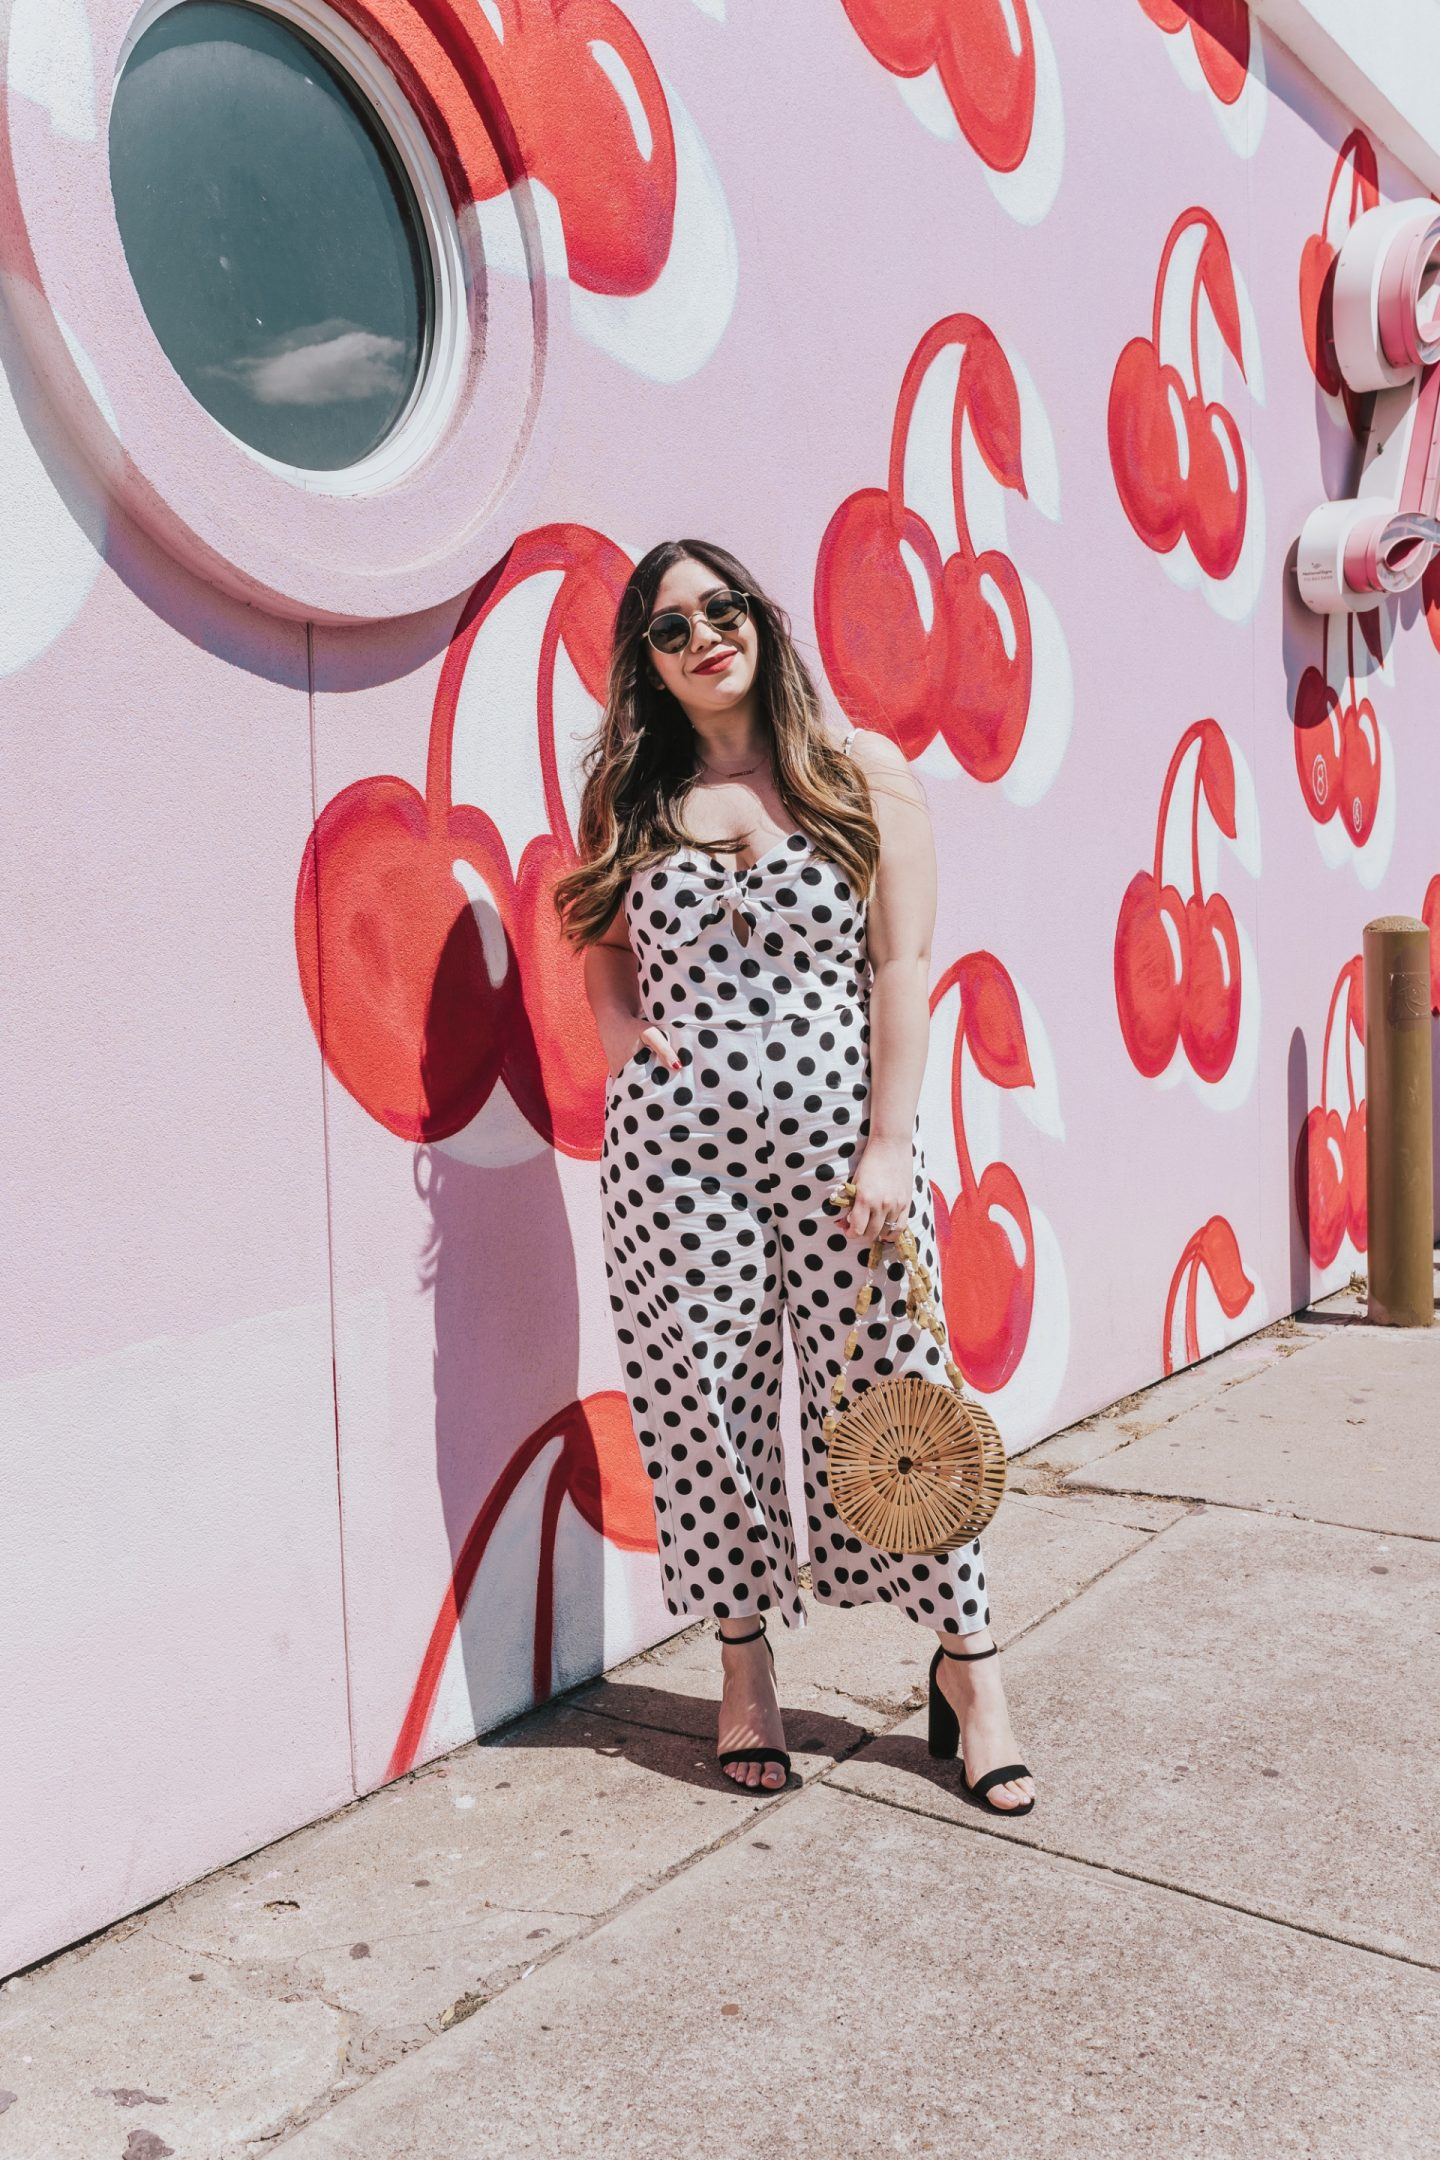 Spotted: $56 Polka Dot Jumpsuit